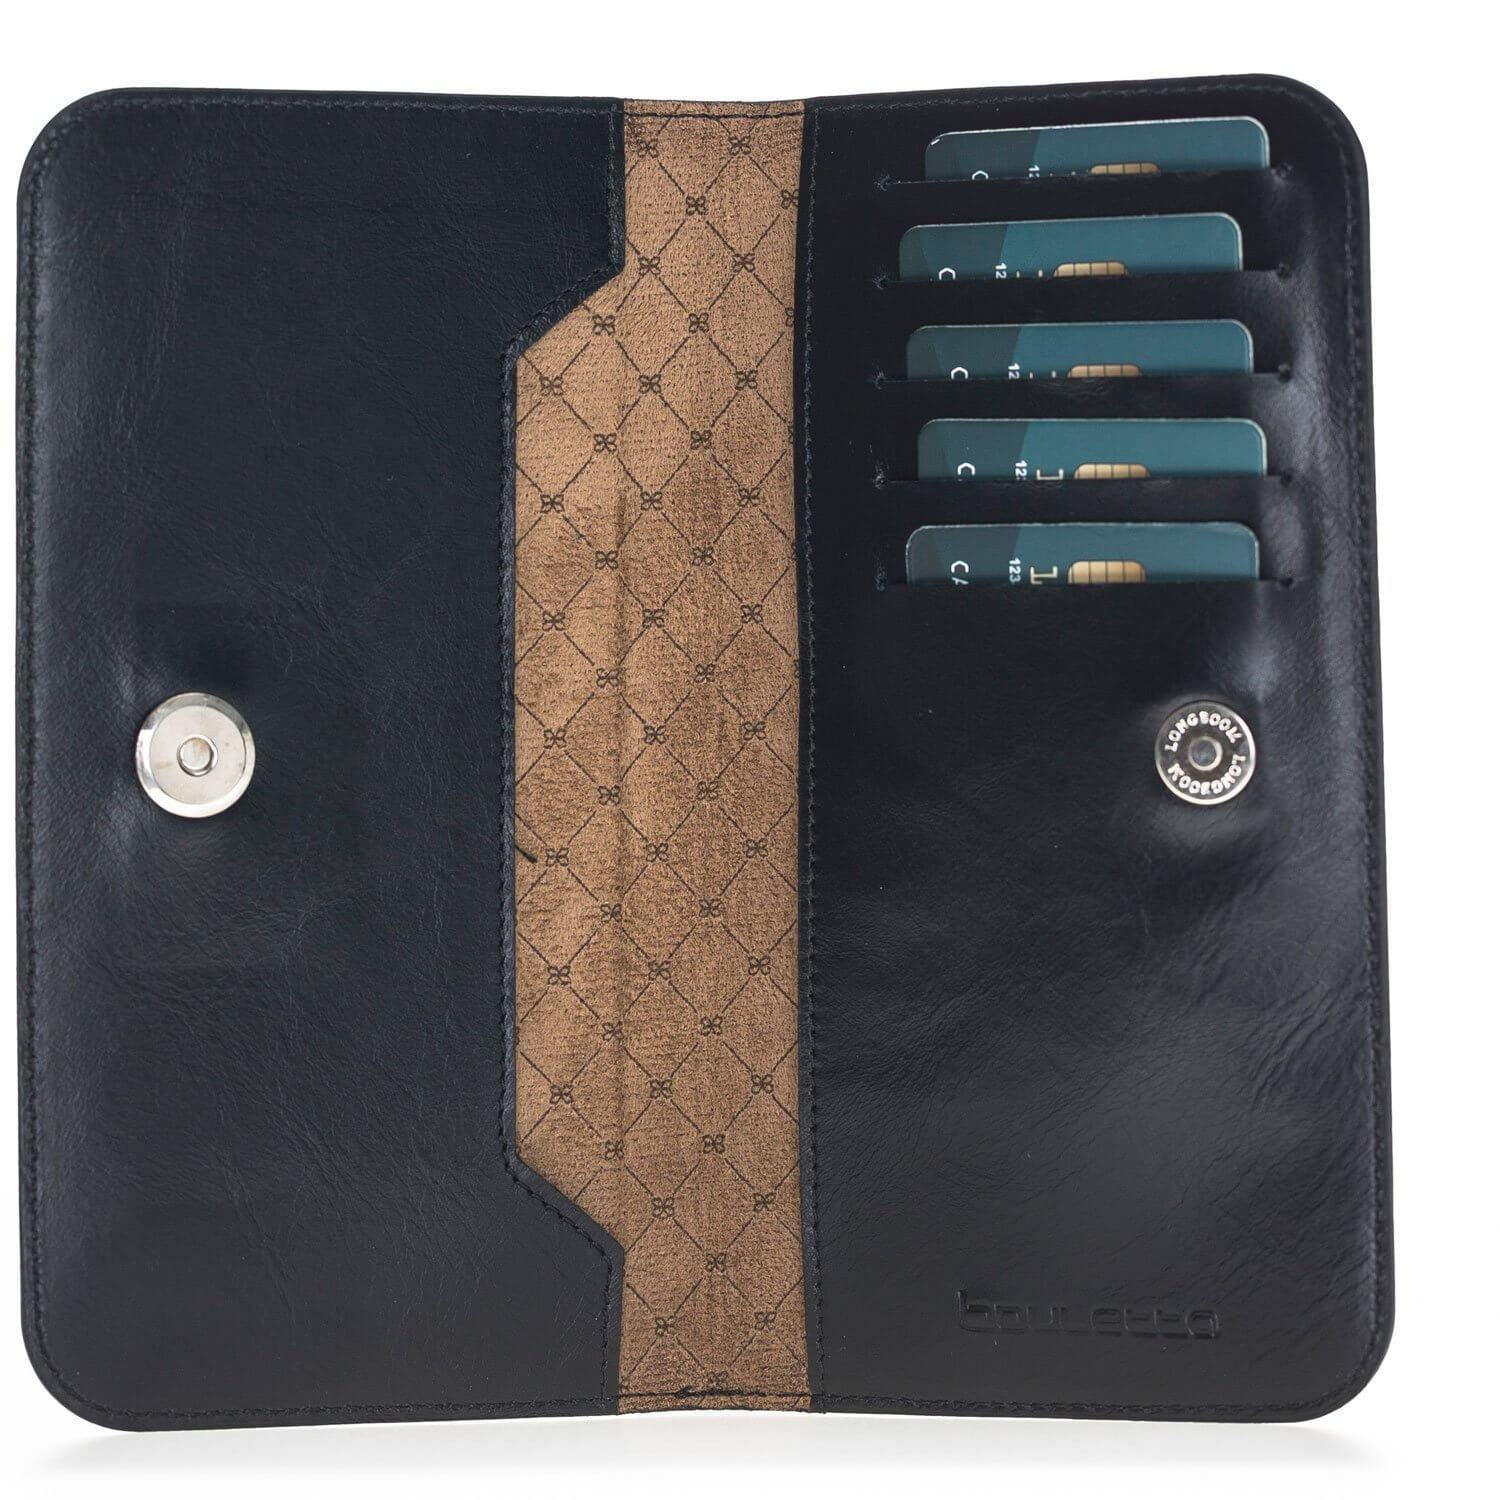 Phone Case Universal Lisbon Clutch Leather Phone Case for iPhone XS Max - Rustic Black Bouletta Case